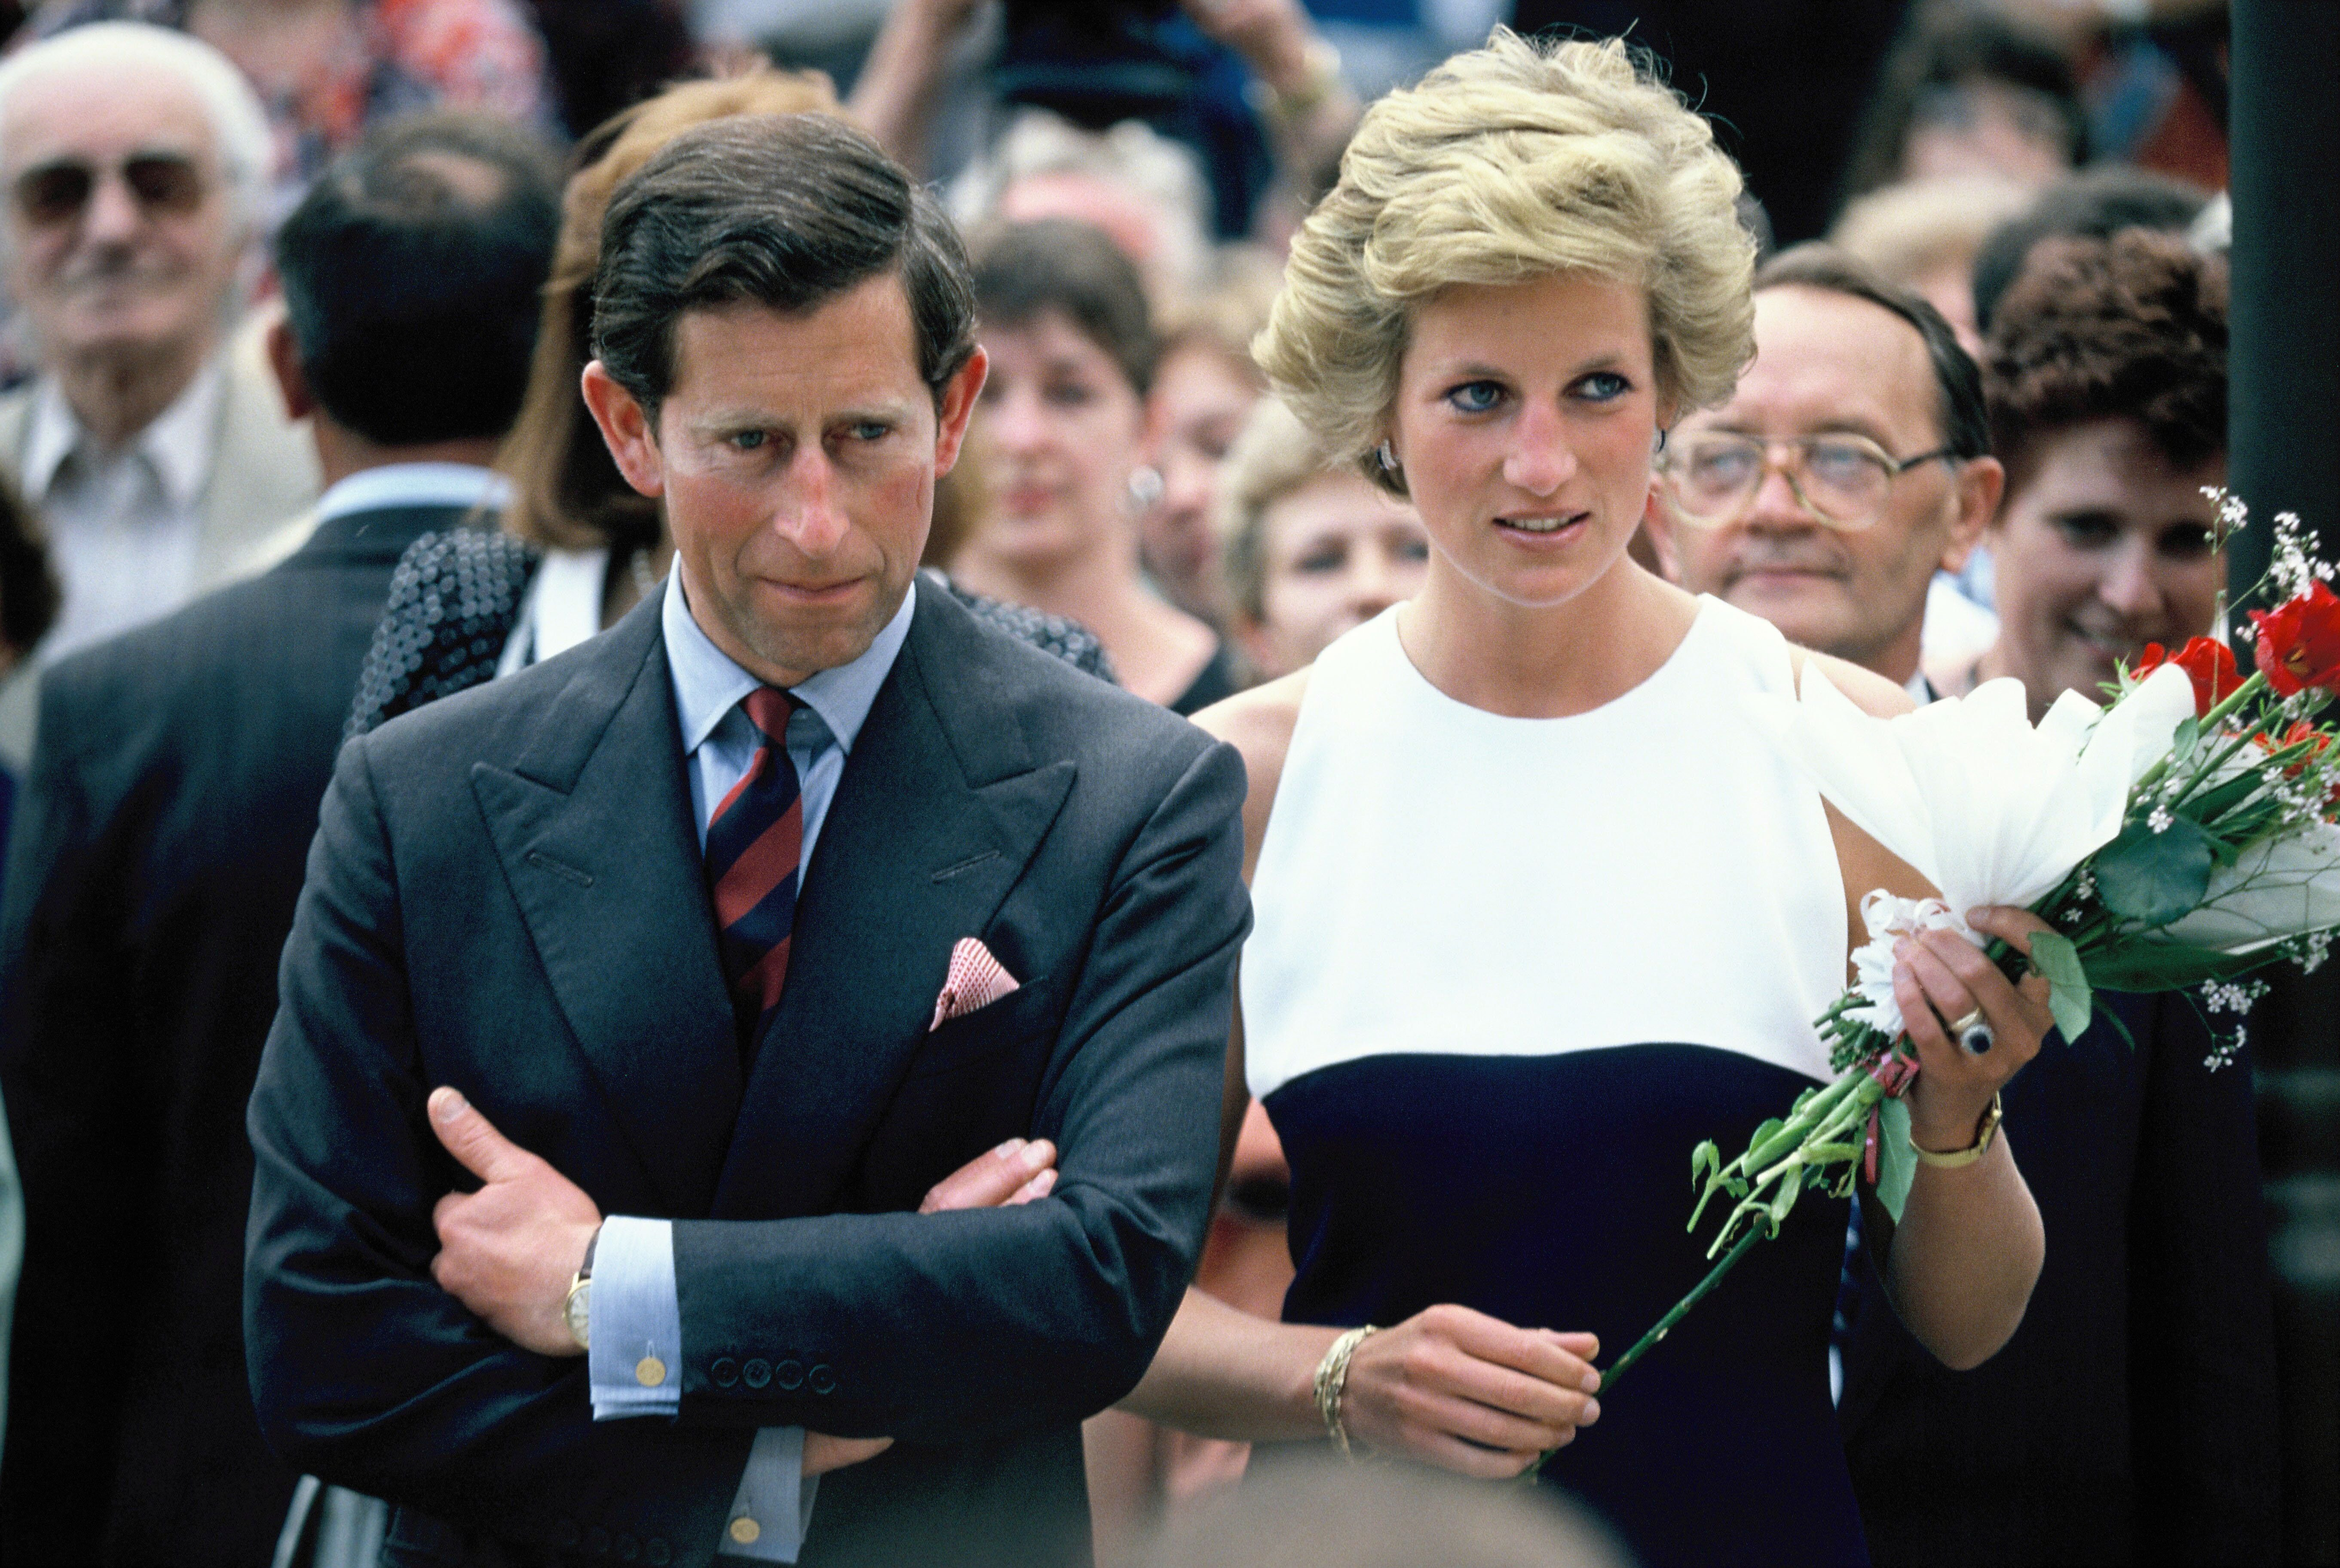 Prince Charles and Princess Diana in Hungary. | Source: Getty Images